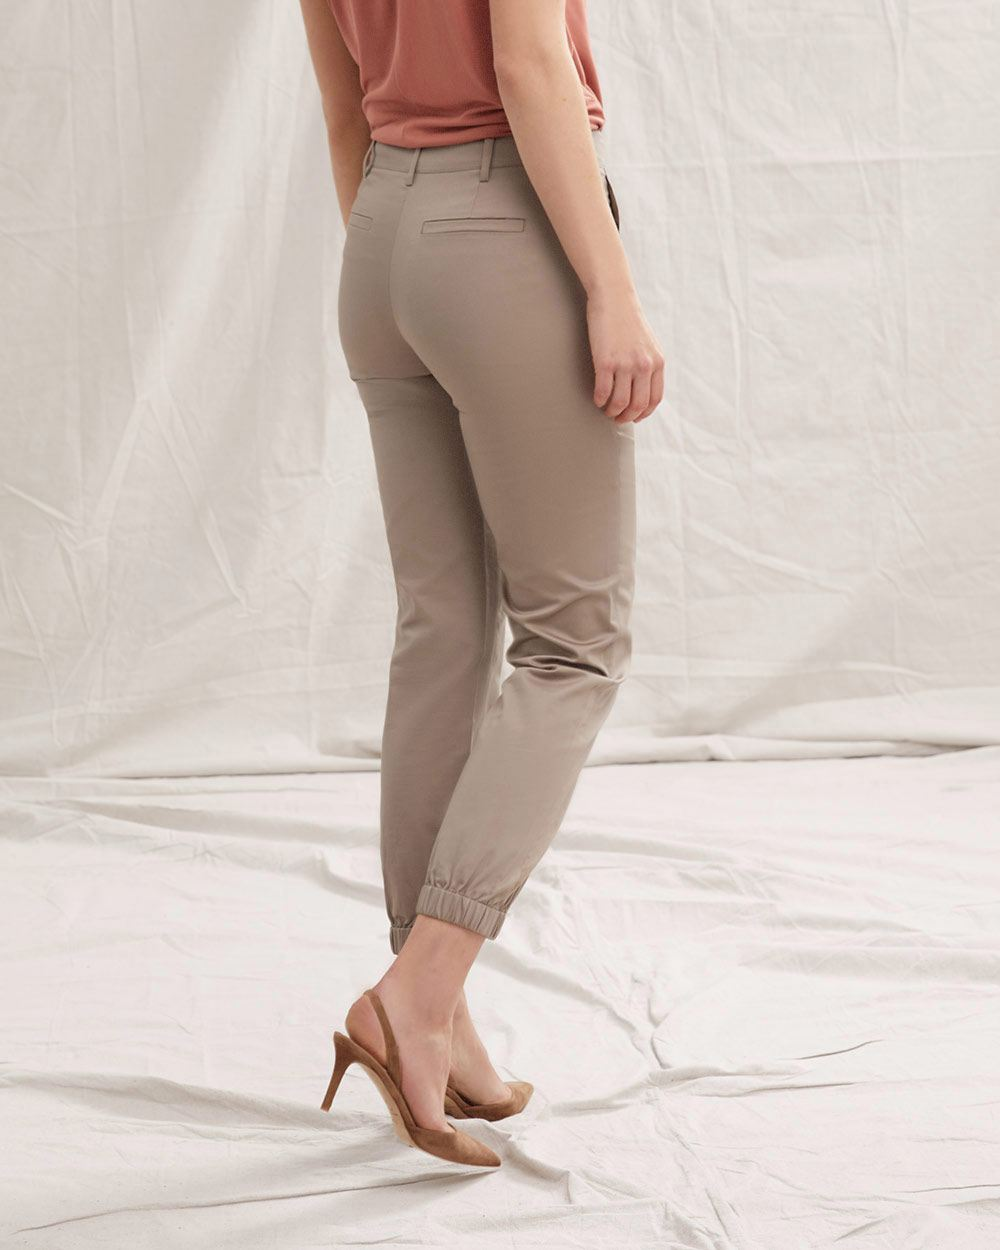 Cotton and Linen Jogger Pant - 28""